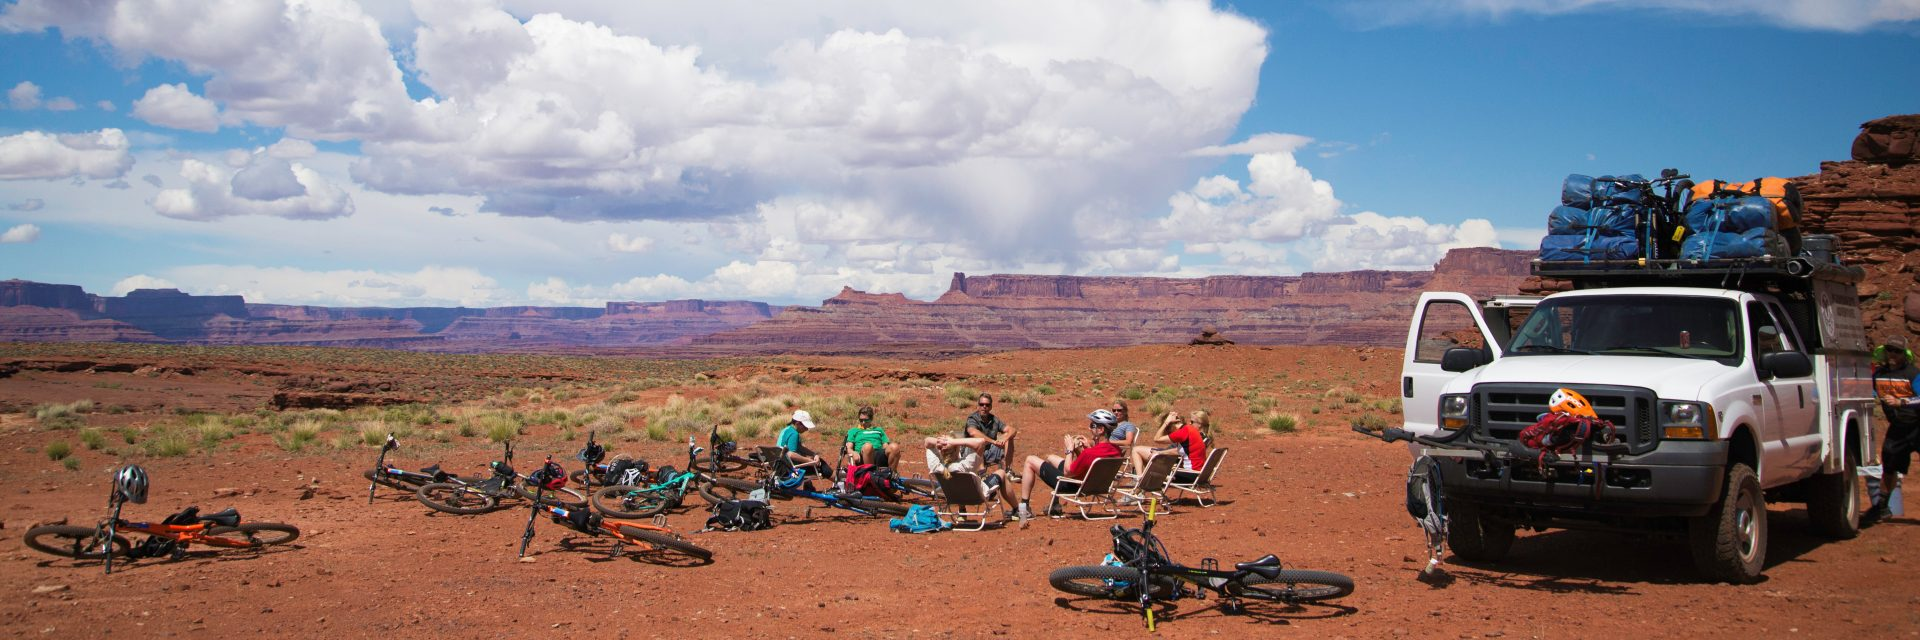 Lunch stop at an old drill pad prior to the descent into Lockhart Basin during the 4-day Needles to Moab guided mountain bike tour